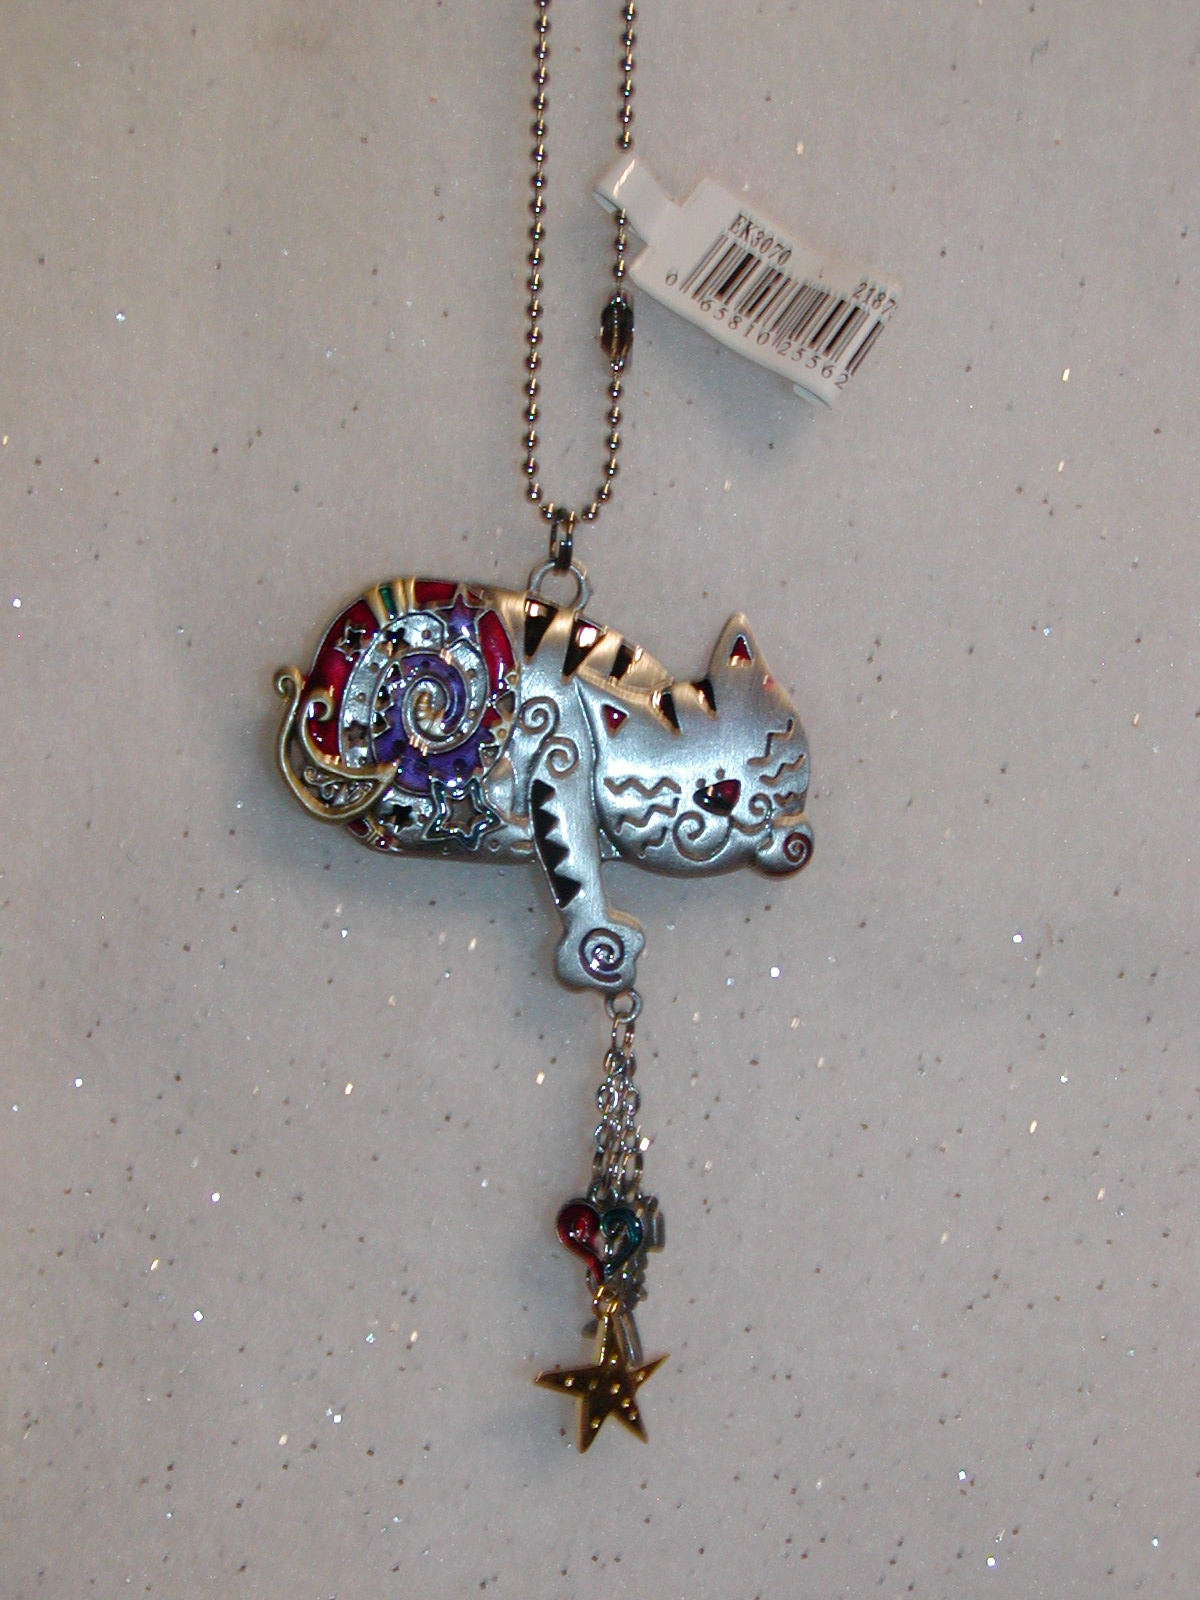 CAT-CAR-MIRROR-CHARMS-COLORED-CAT-NEW-GANZ-CHARM